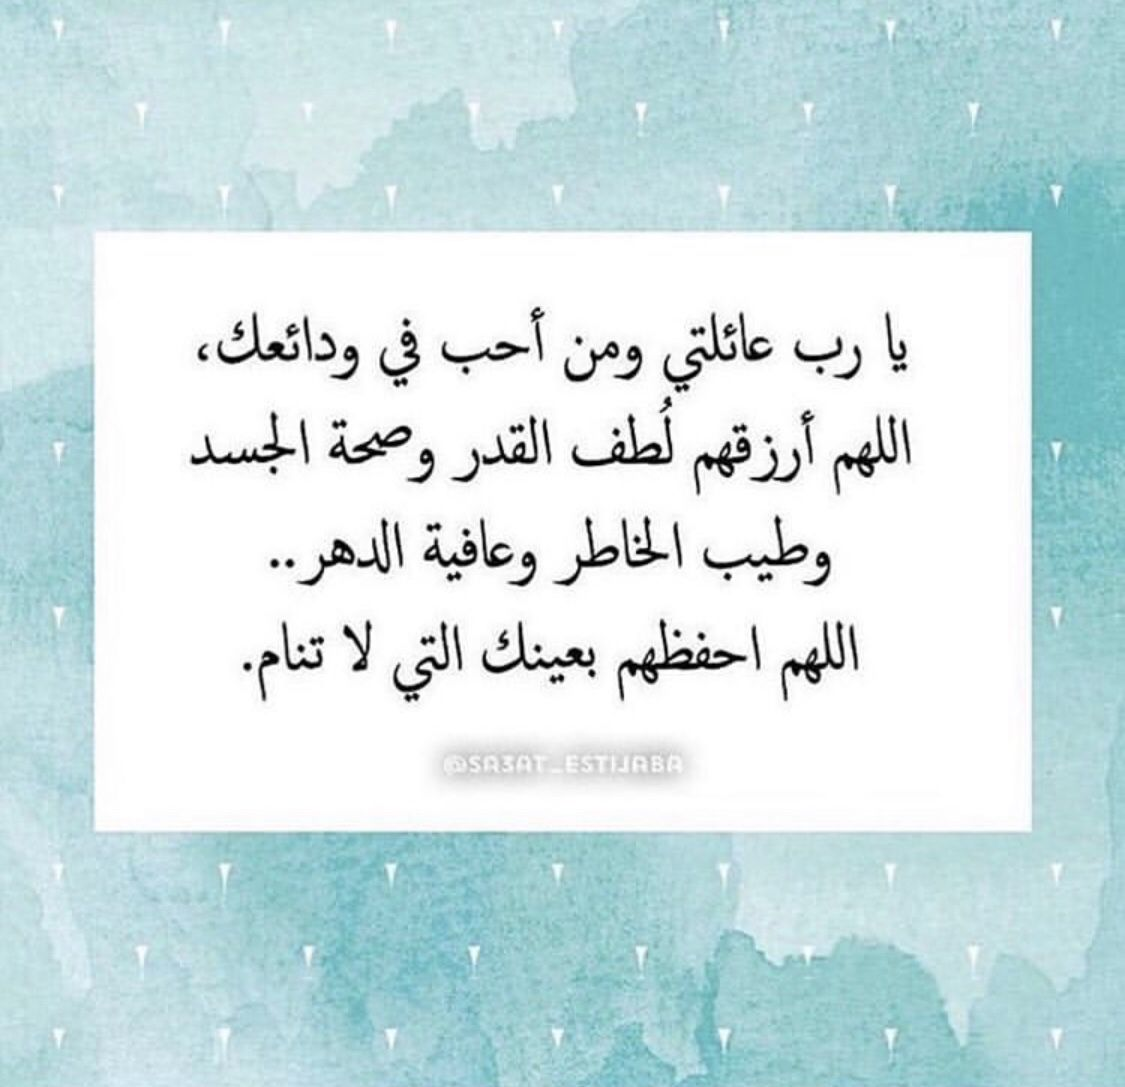 Pin By Rr On أدعيه Islamic Quotes Funny Arabic Quotes Islamic Quotes Quran